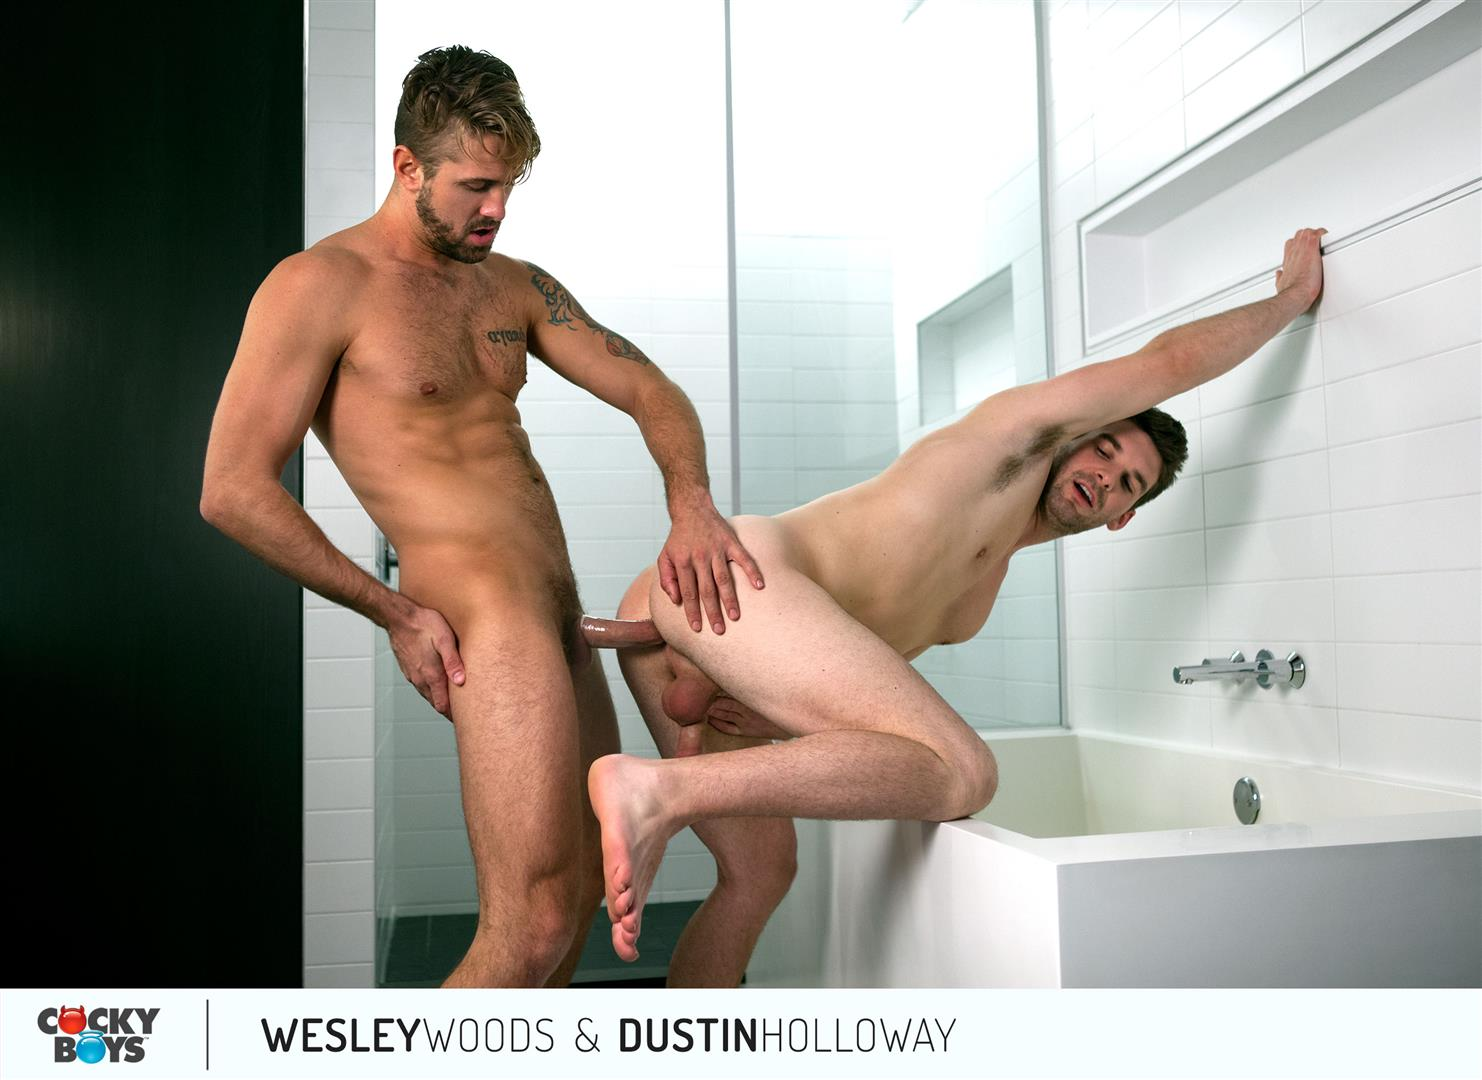 Cockyboys-Wesley-Woods-and-Dustin-Holloway-Hung-Hunks-Flip-Fucking-Amateur-Gay-Porn-24 Cockyboys:  Wesley Woods and Dustin Holloway Flip-Flop Fucking